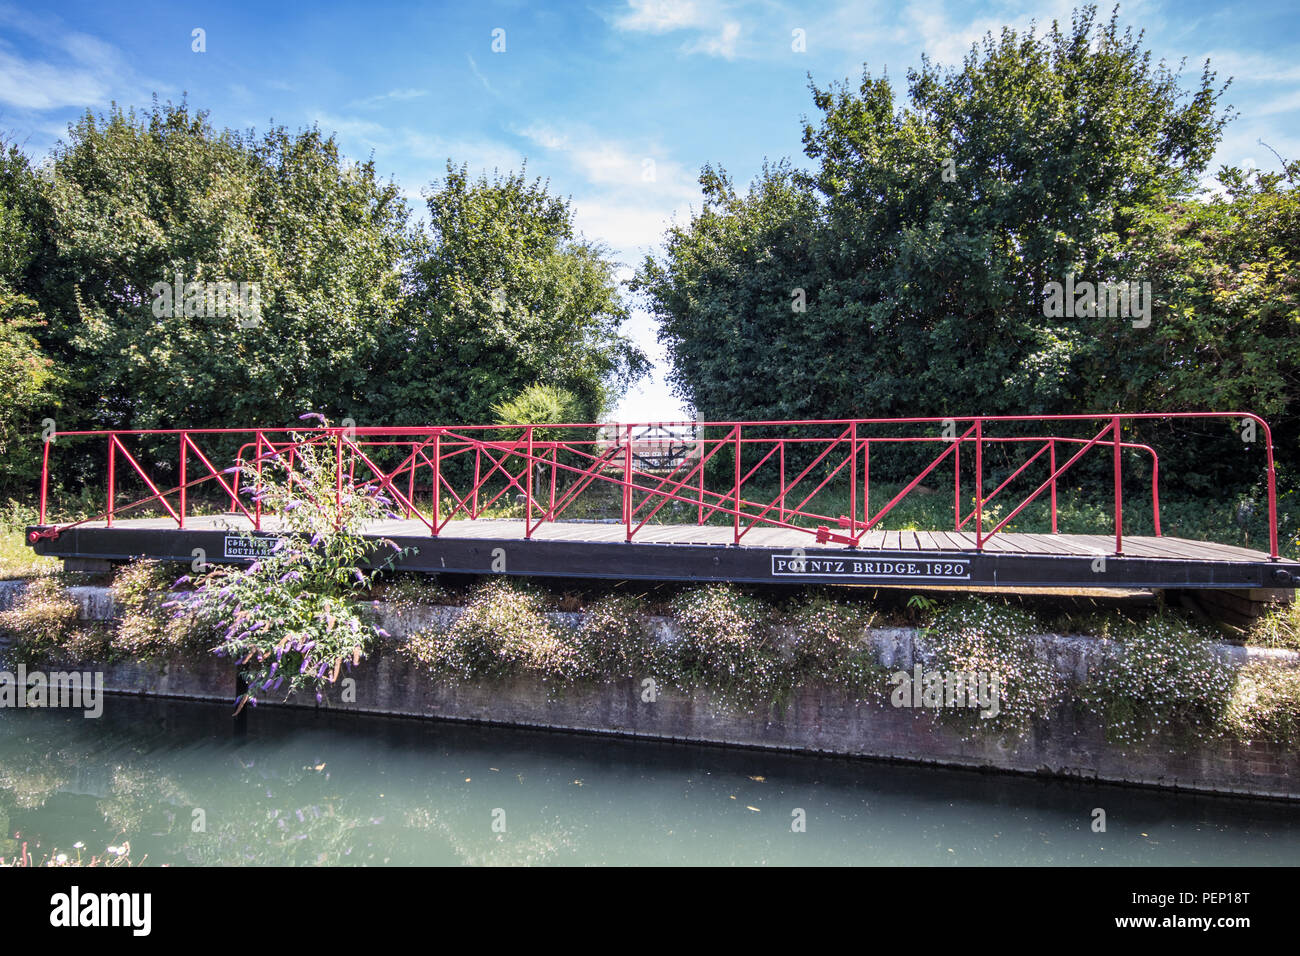 The Poyntz Bridge (1820), a historic swingbridge at Chichester Canal, Chichester, West Sussex, UK Stock Photo